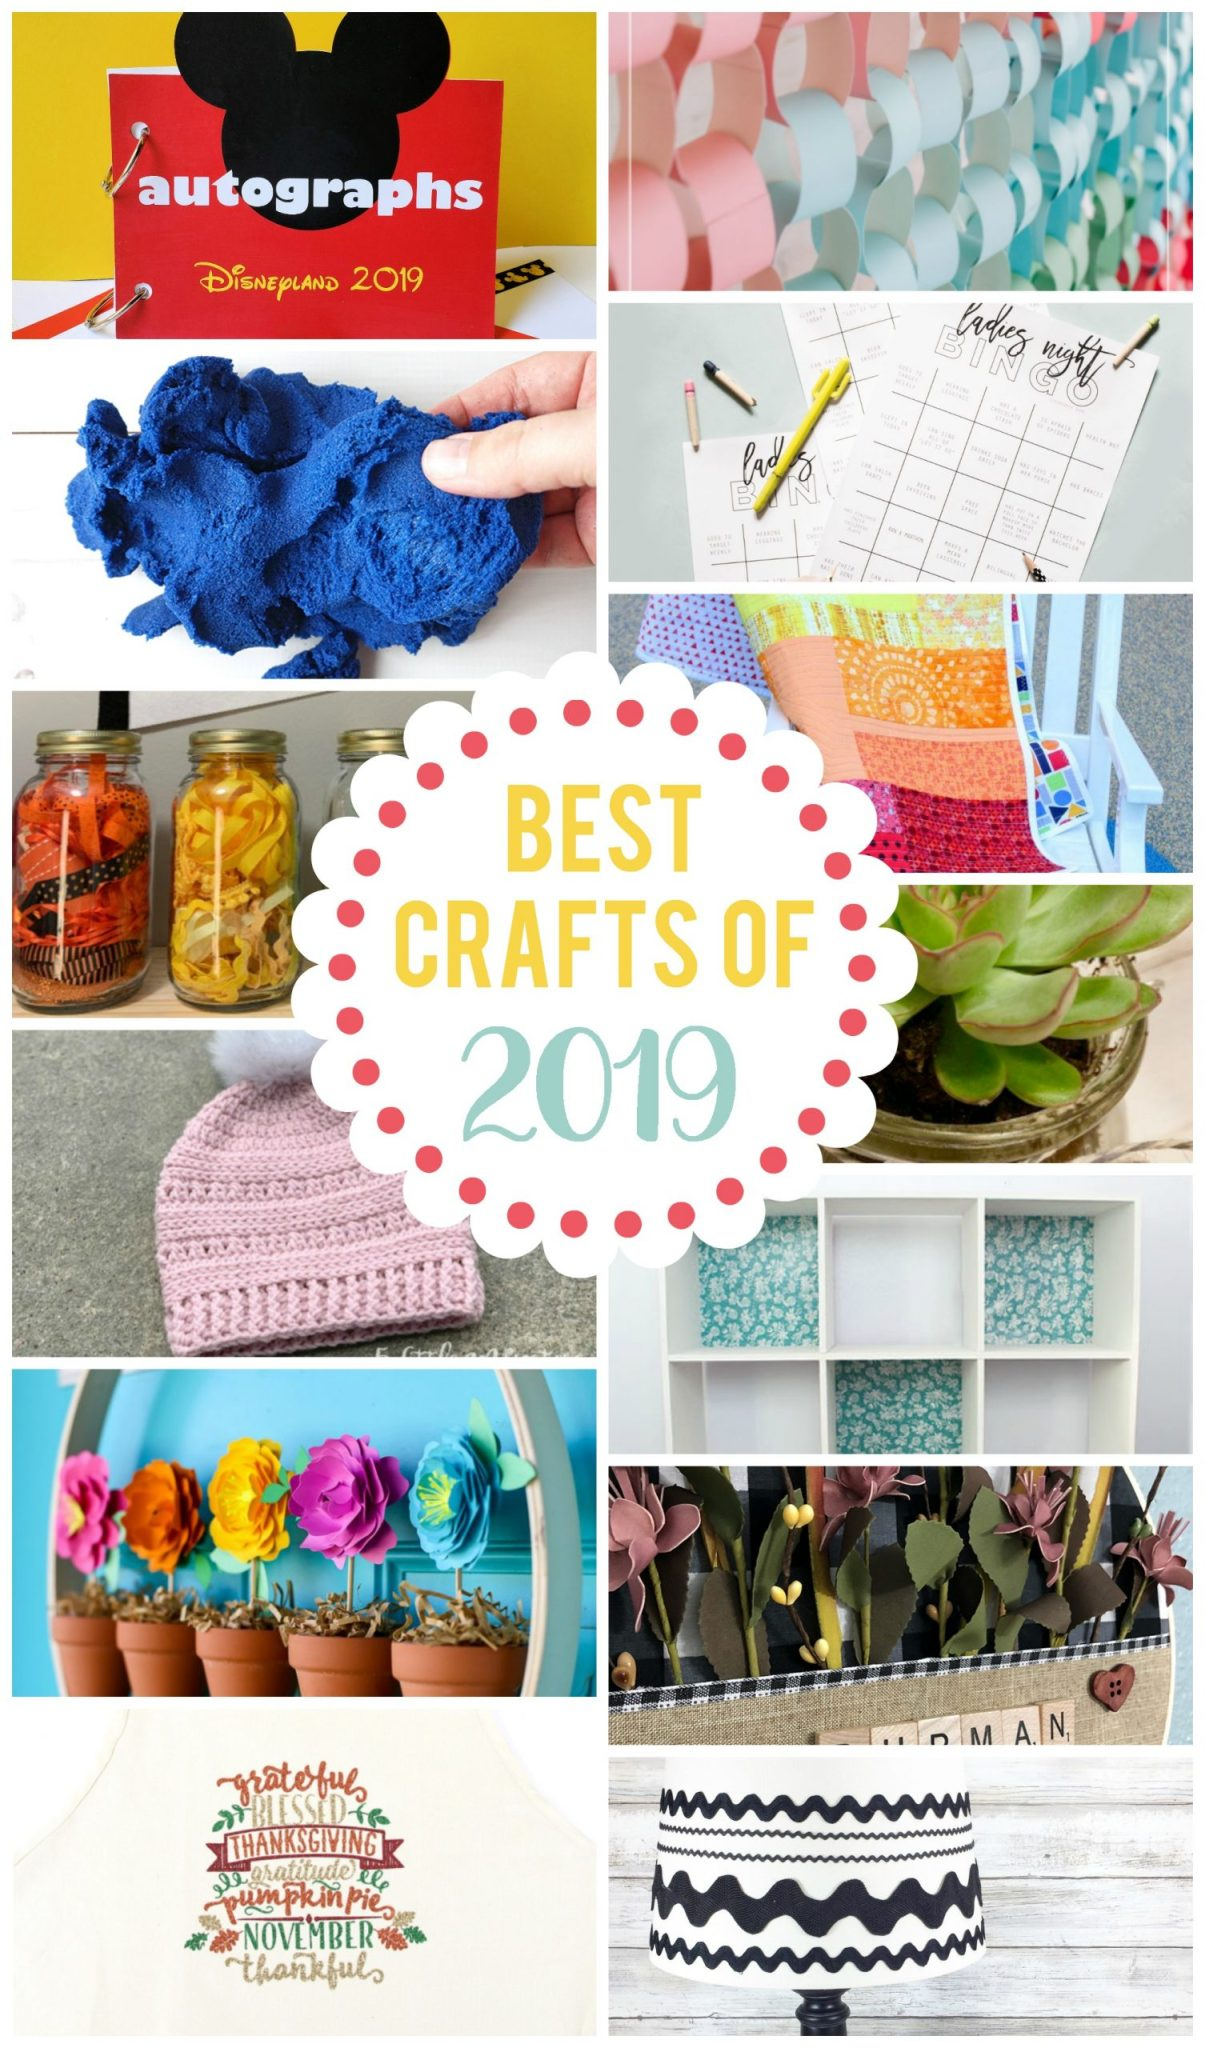 Cre4atively Beth Shares the Top 15 Crafts of 2019 #creativelybeth #topcrafts #2019 #bestcrafts